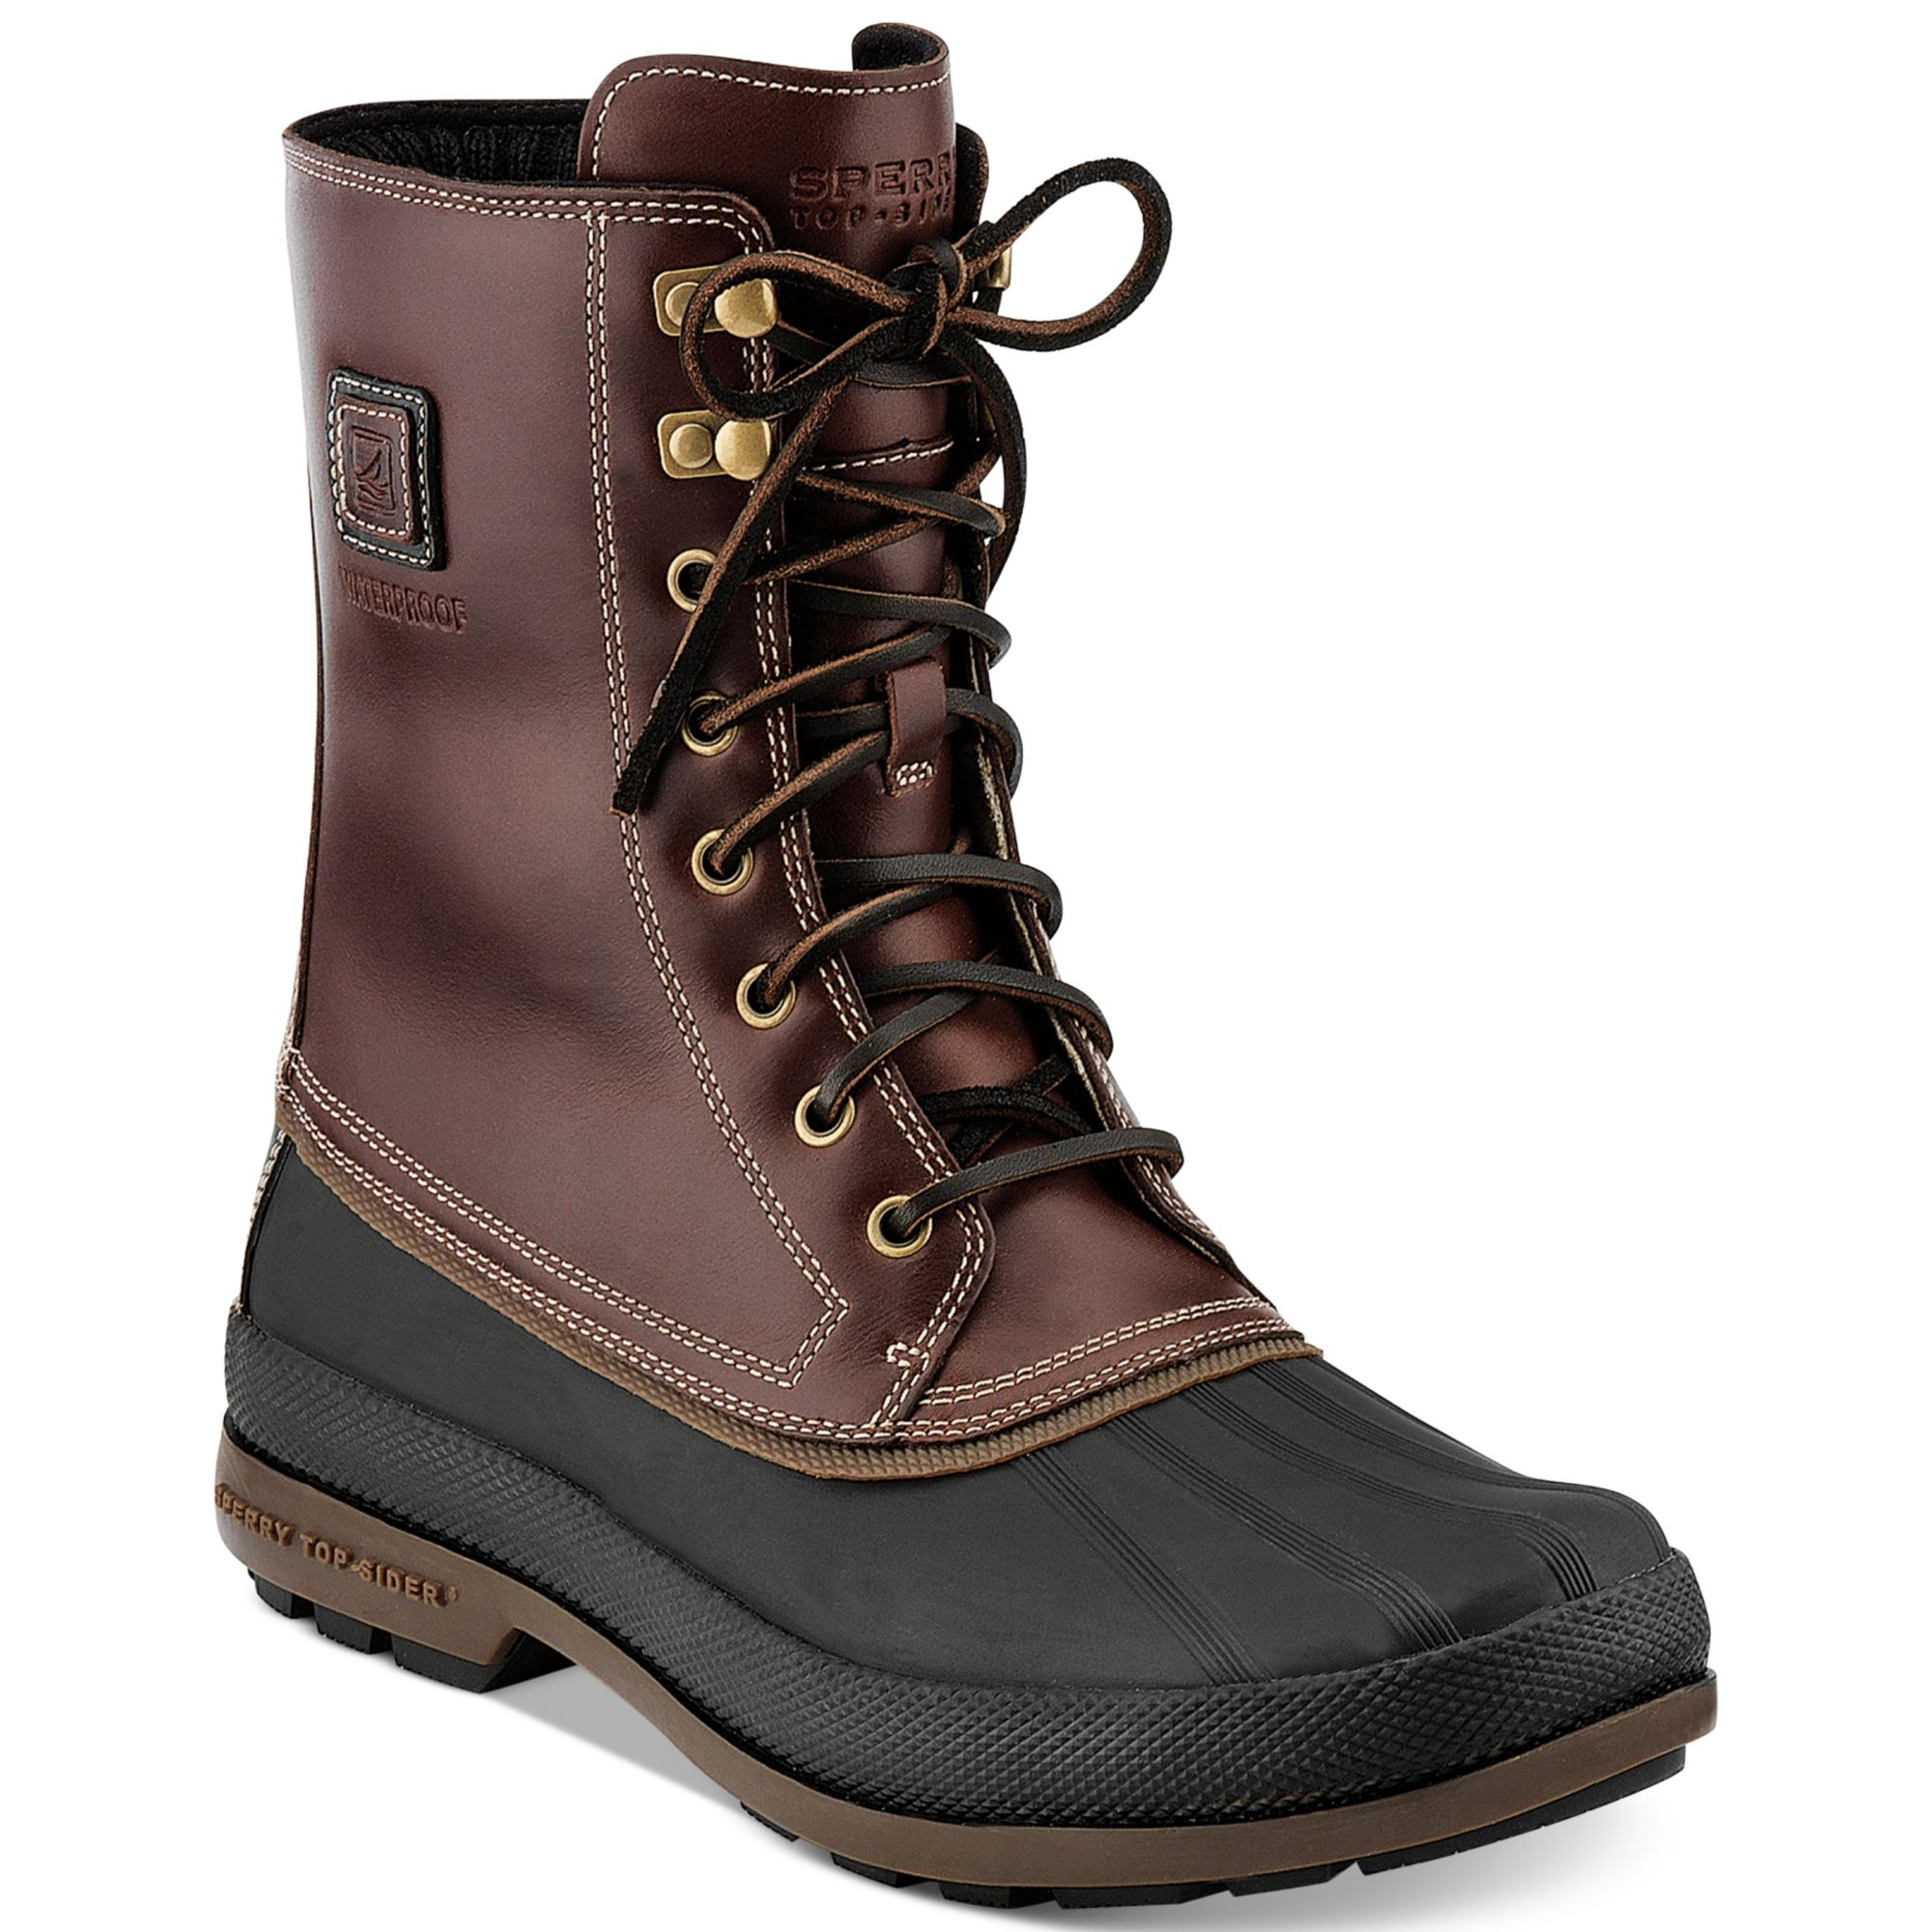 Duck boots men - photo#18